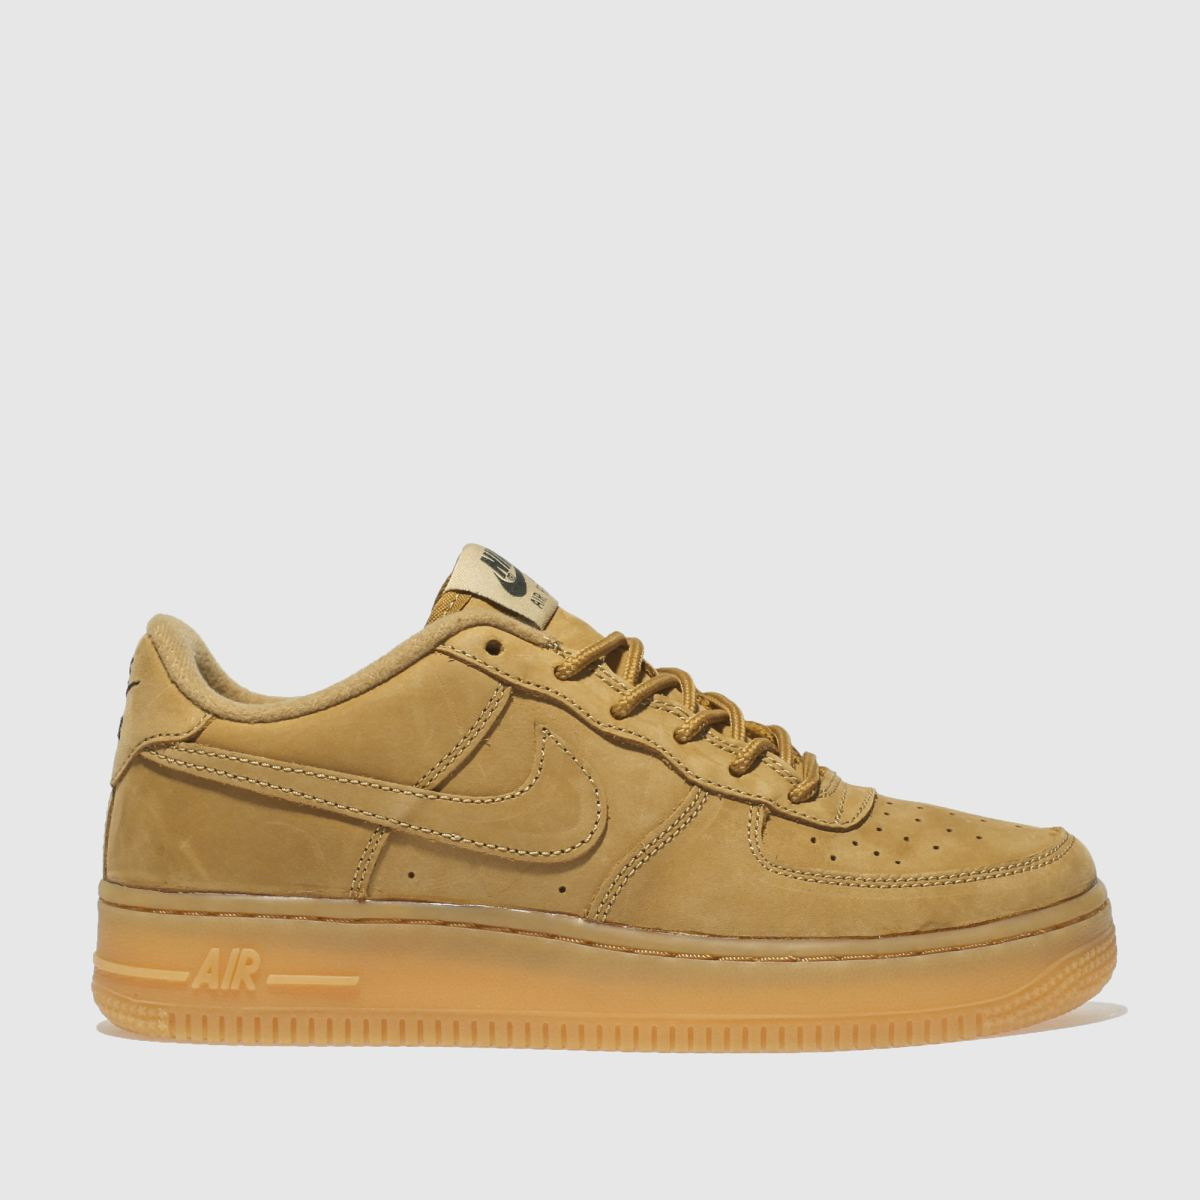 3eb247e223753f Nike Tan Air Force 1 Winter Premium Trainers Youth - £55.00 - Bullring    Grand Central